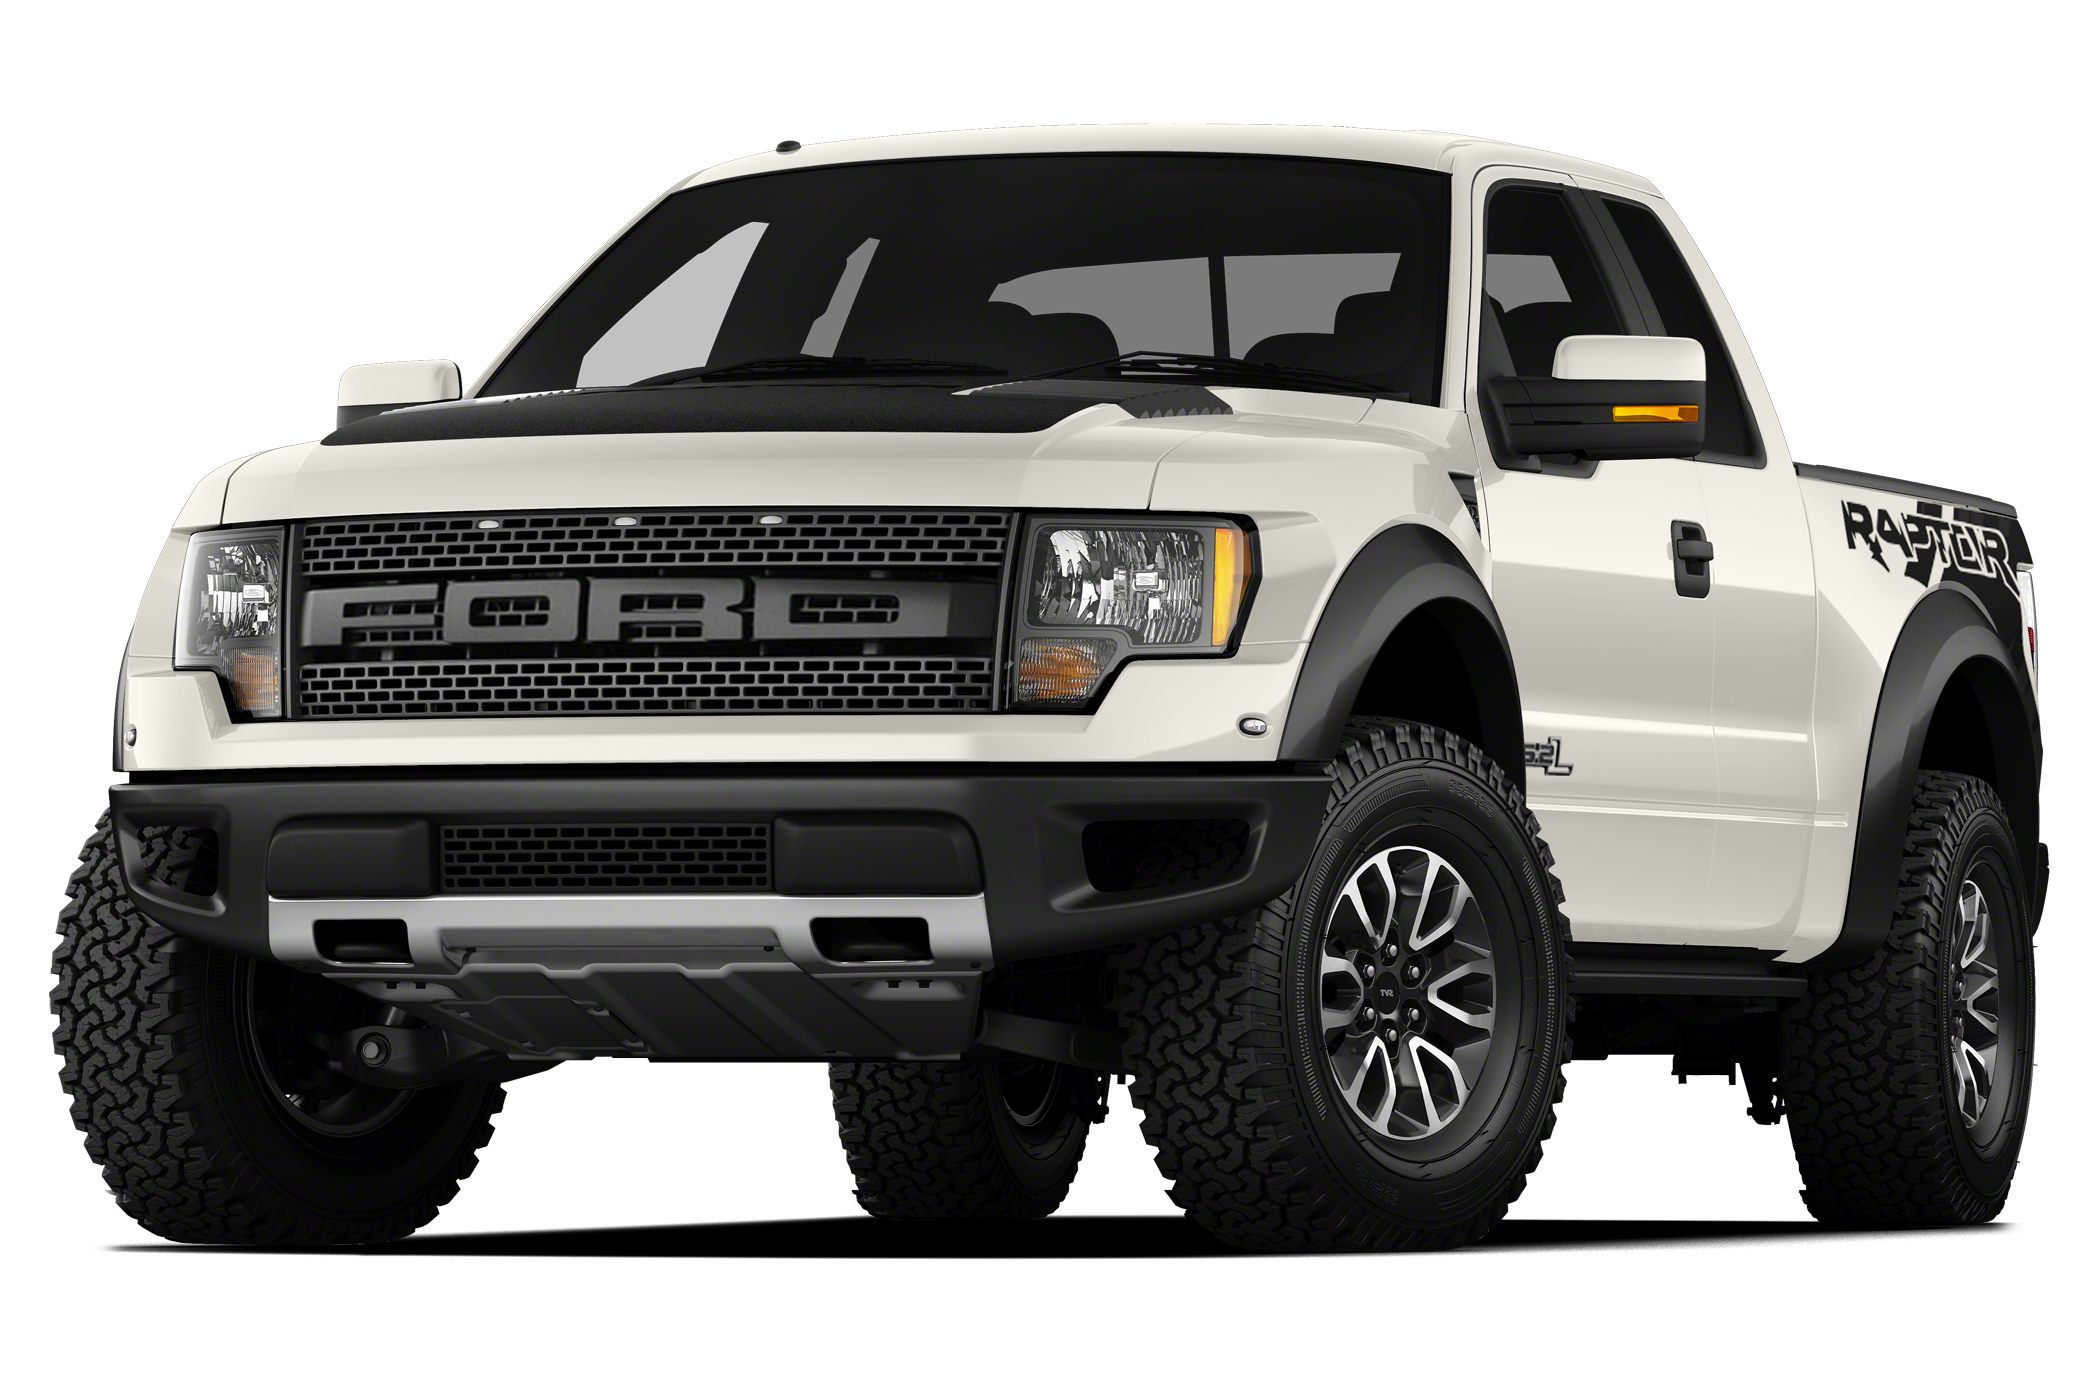 2014 Ford F150 SVT Raptor Crew Cab Pickup for sale in Henderson for $57,569 with 10,989 miles.